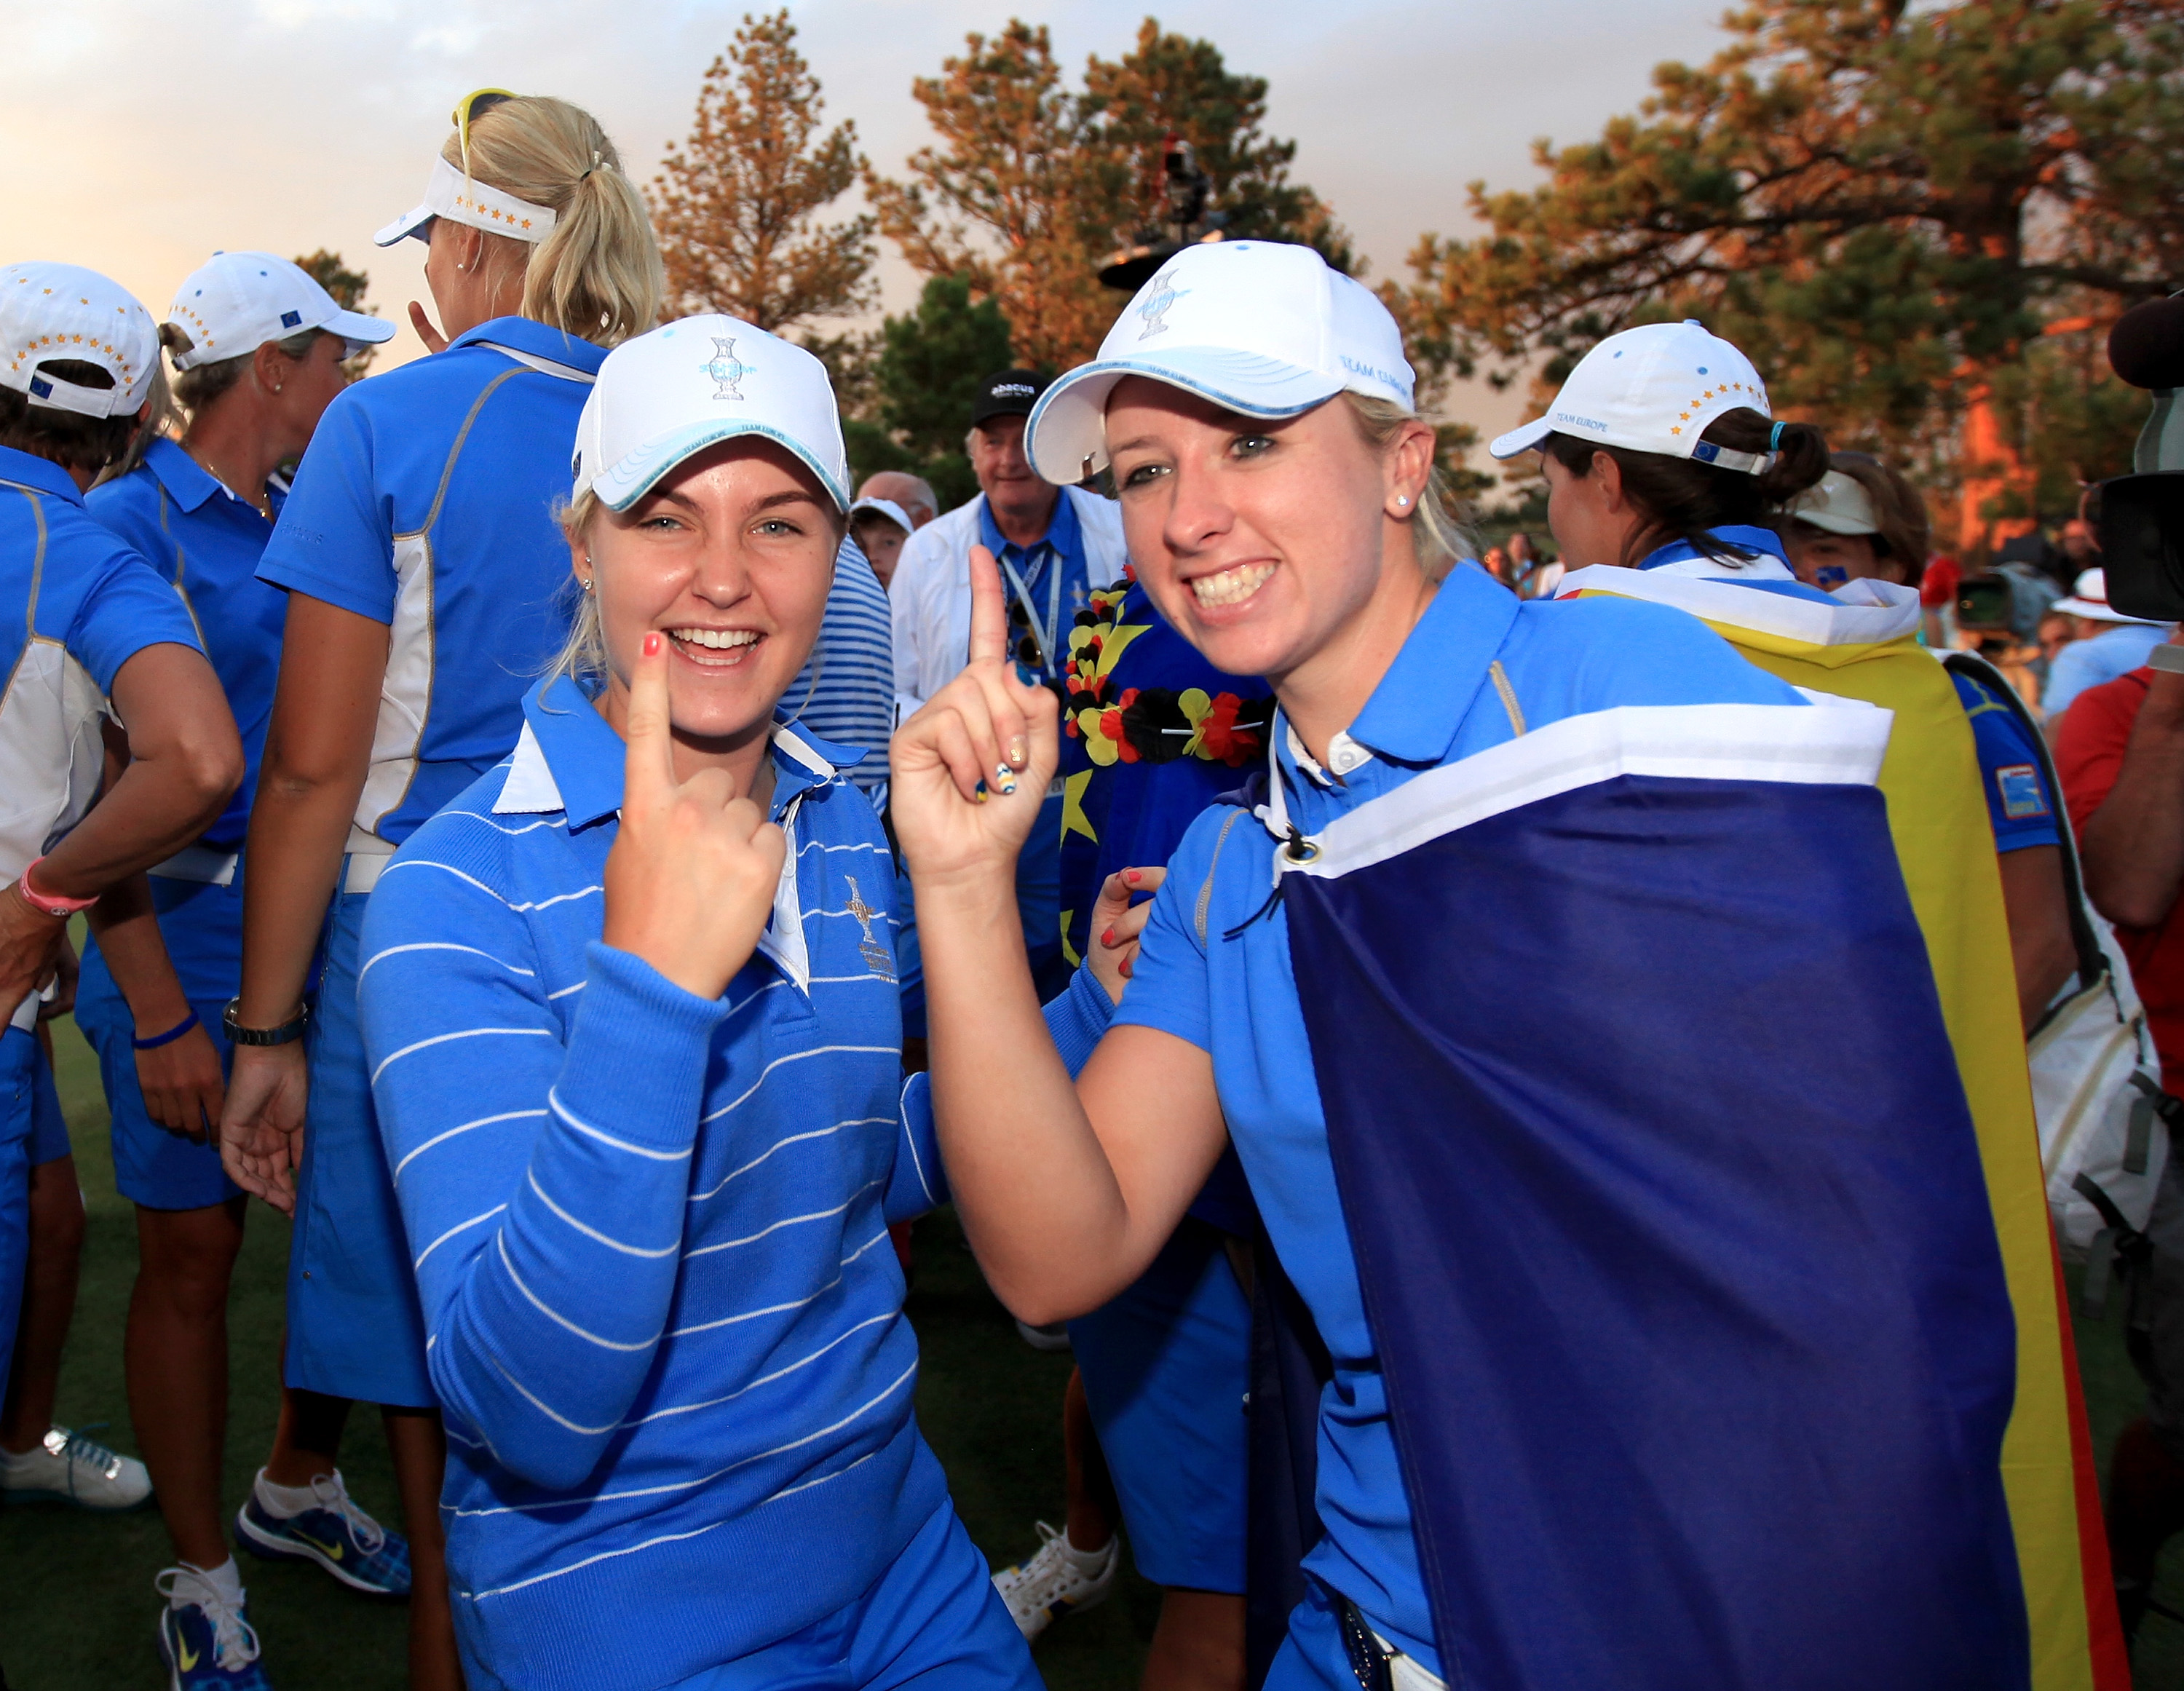 Hull (left) is the youngest player to compete in the Solheim Cup (Photo: Getty Images)